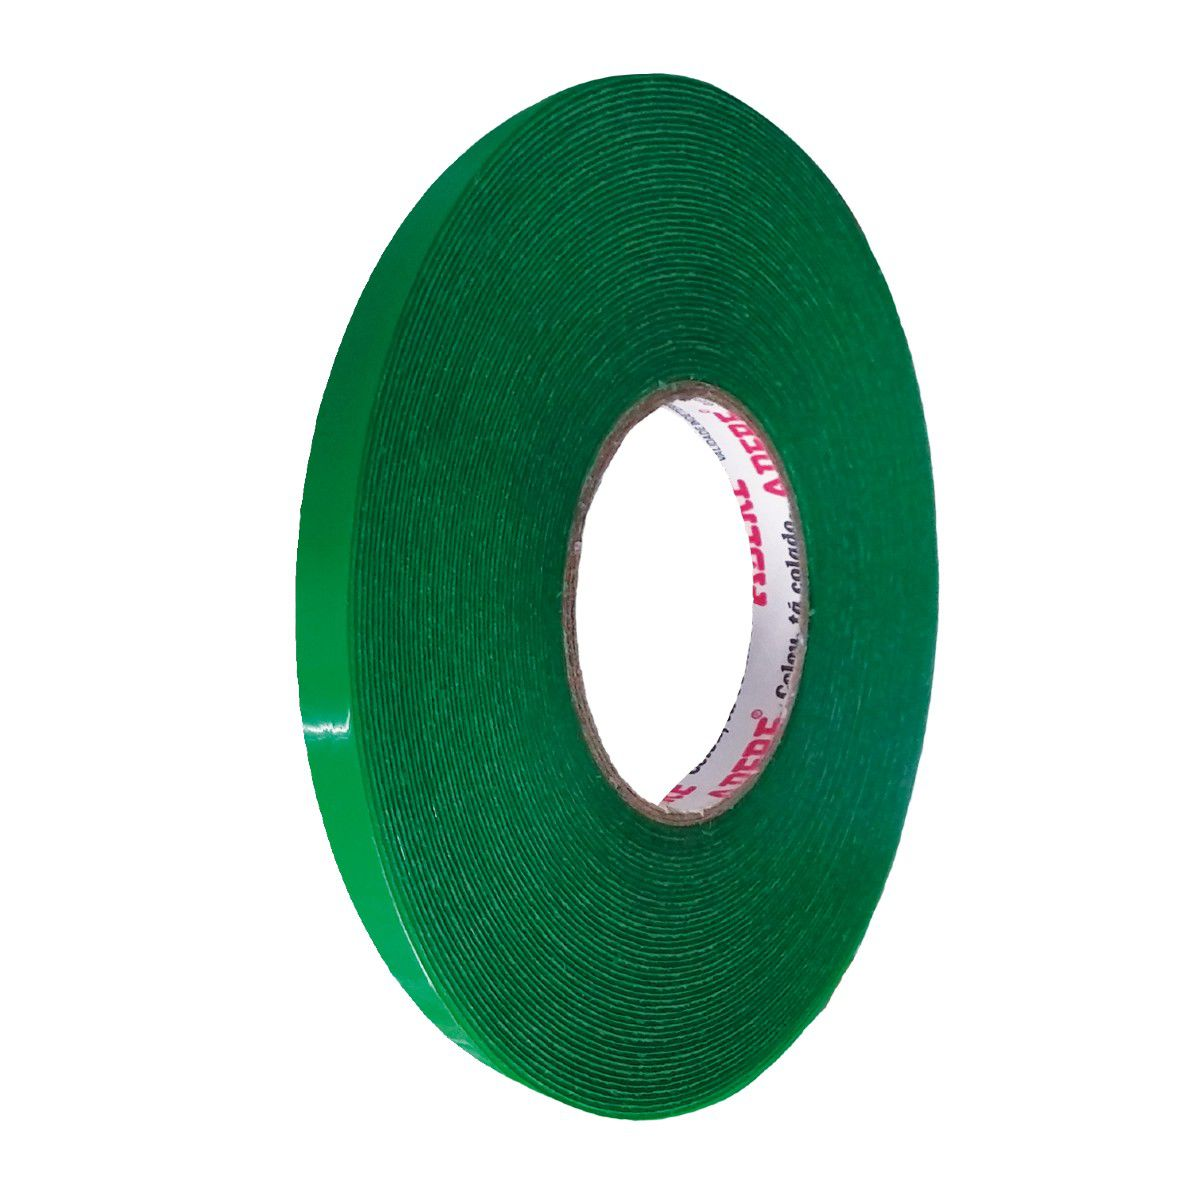 Kit 4 Fita Dupla Face Acrílica Verde 19mm X 20m Adere